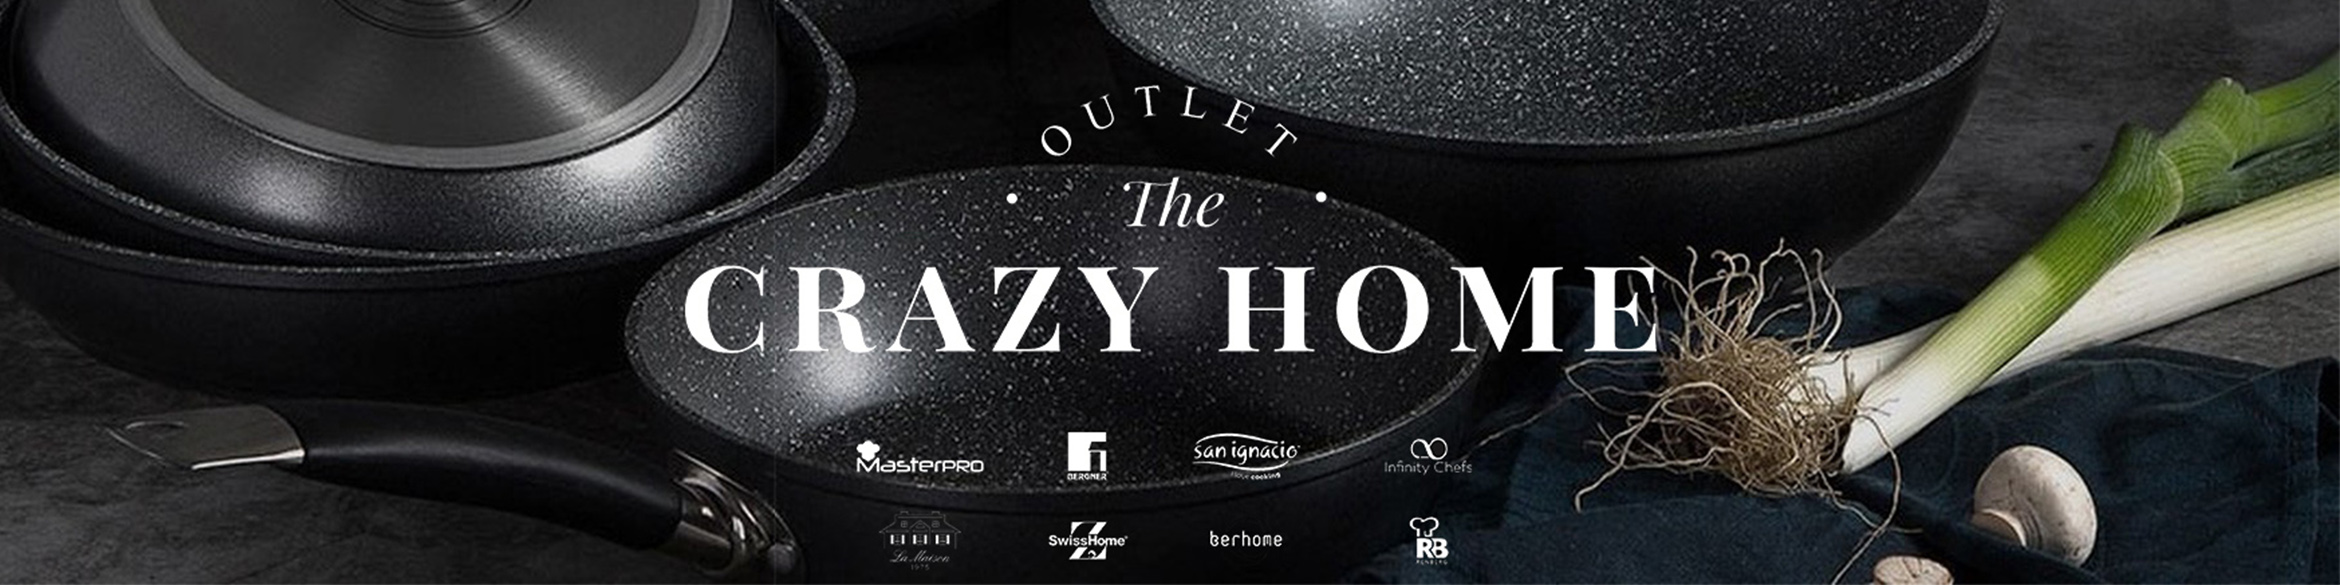 The crazy home outlet